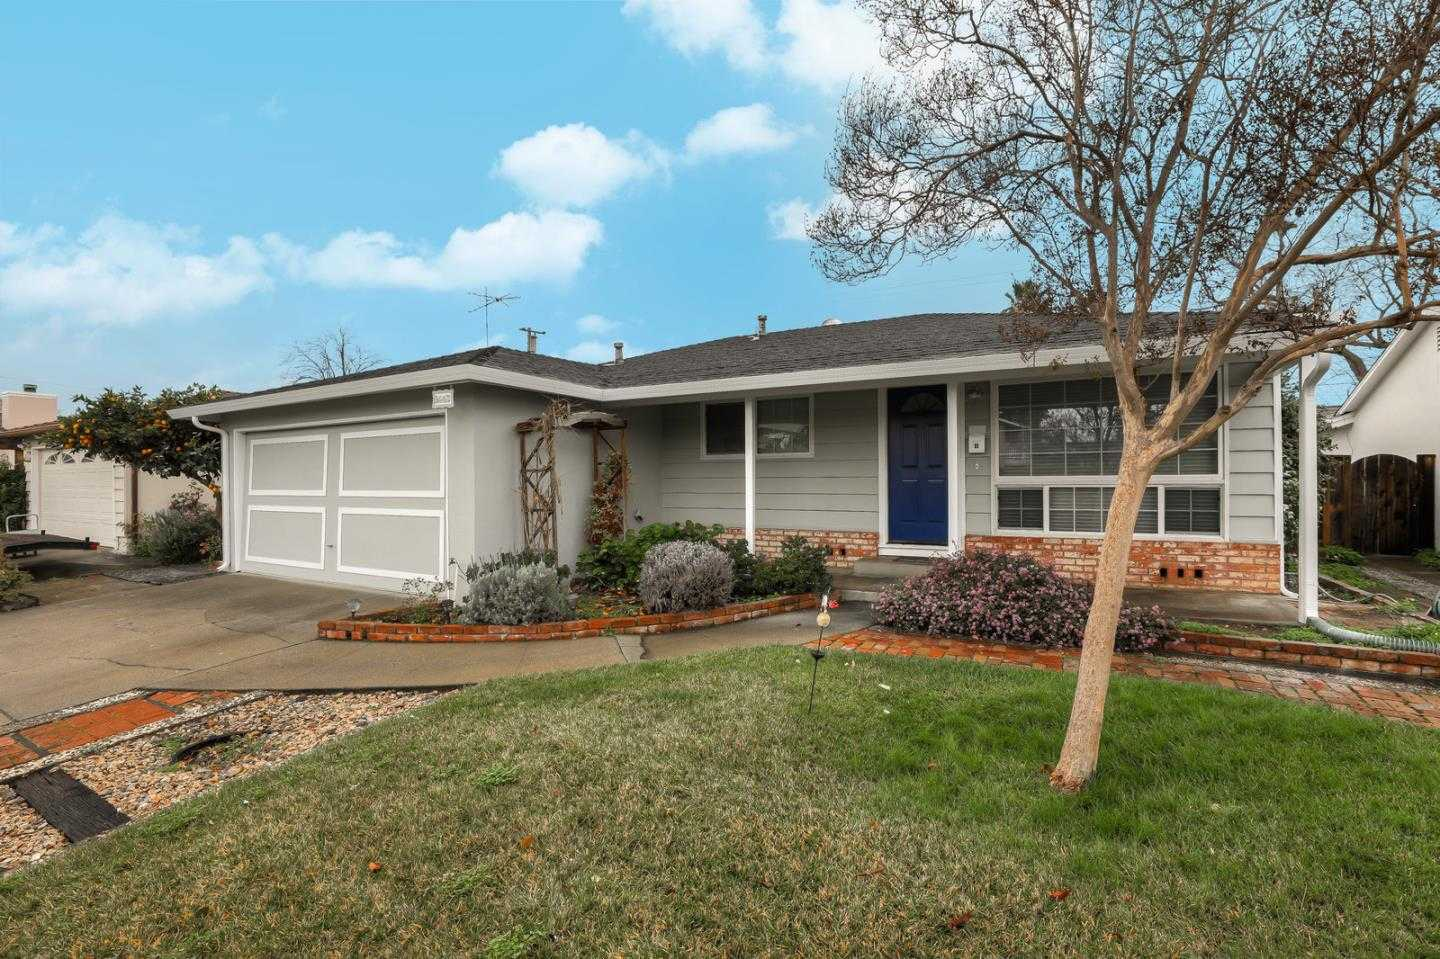 $1,398,000 - 3Br/2Ba -  for Sale in San Jose